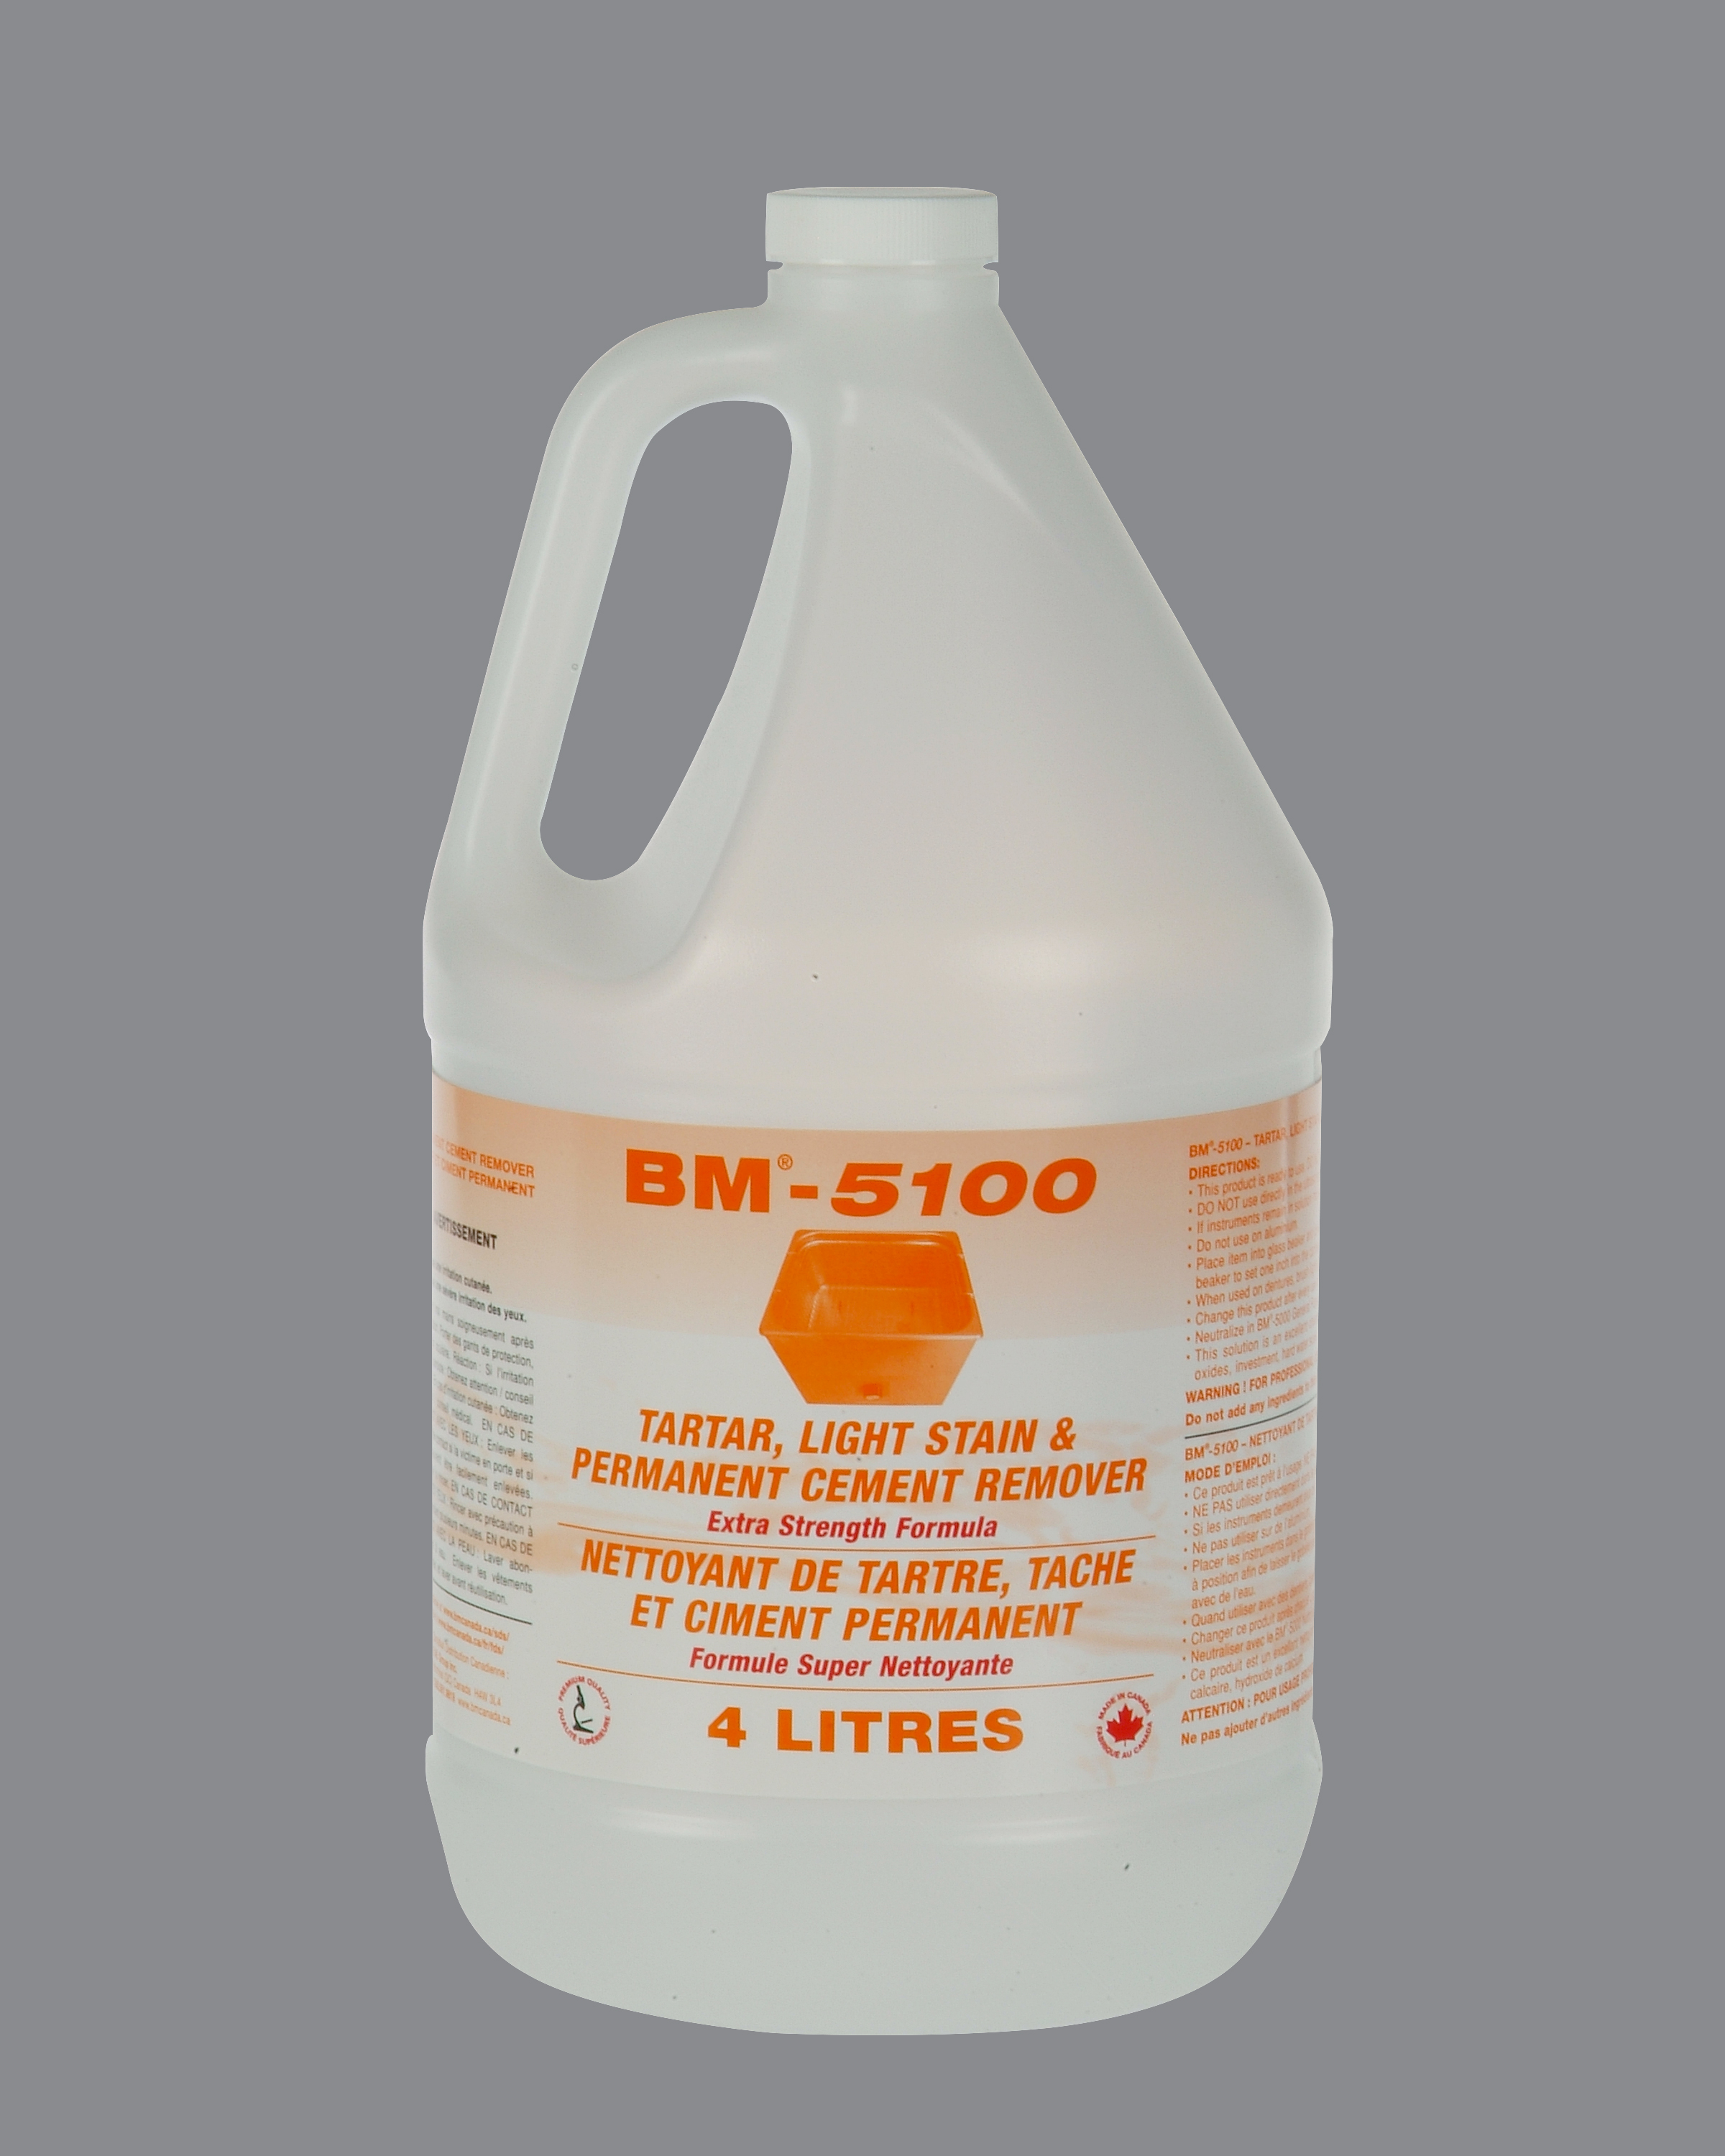 BM-5100 TARTAR LIGHT STAIN AND PERMANENT CEMENT REMOVER